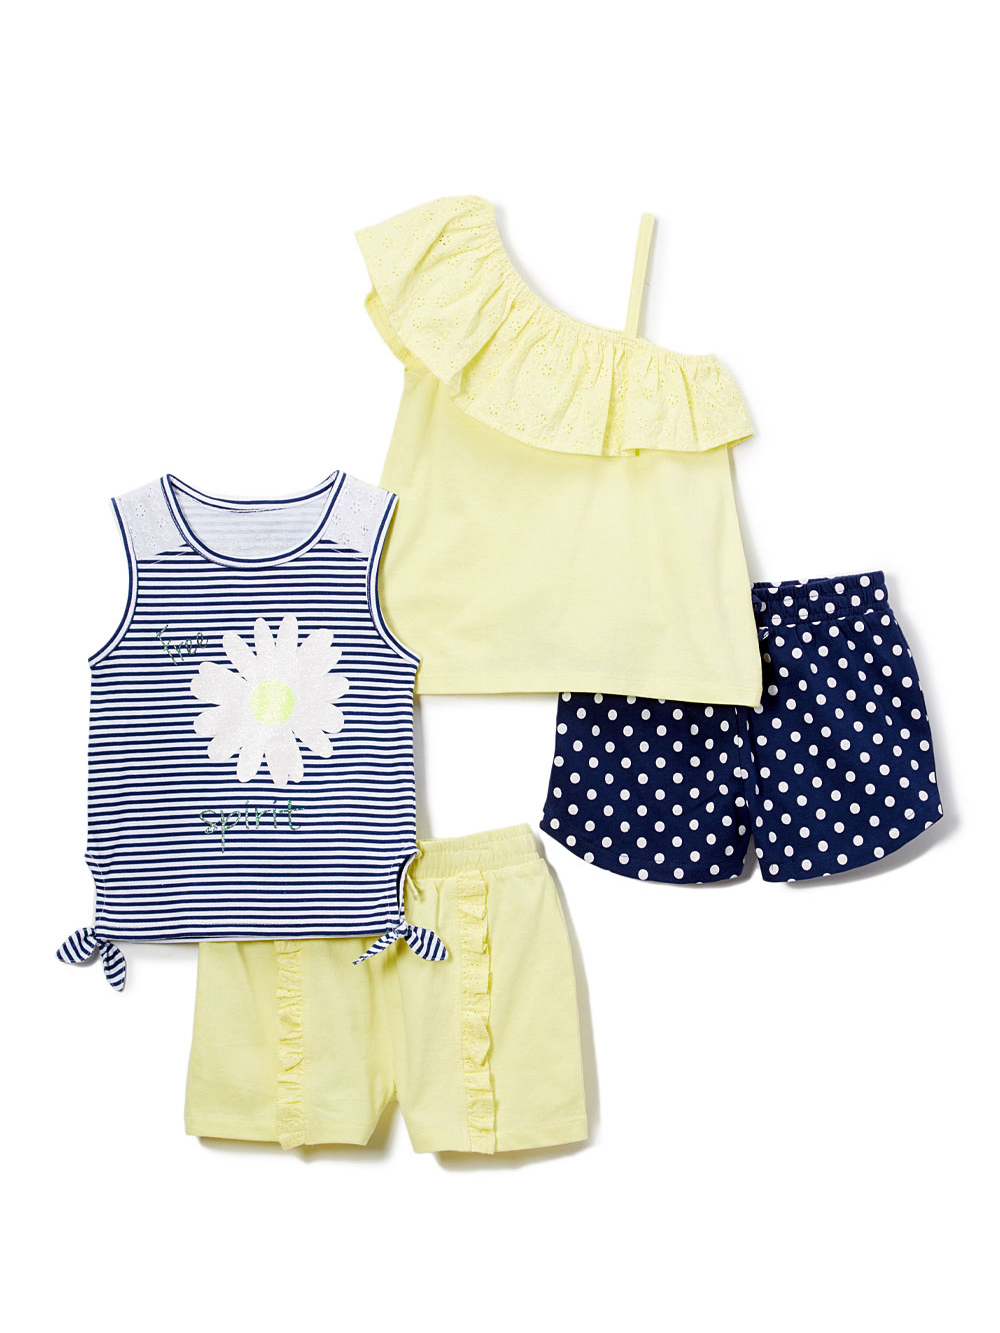 Ruffle Tank, Front-Tie Top & Shorts, 4pc Outfit Set (Toddler Girls)